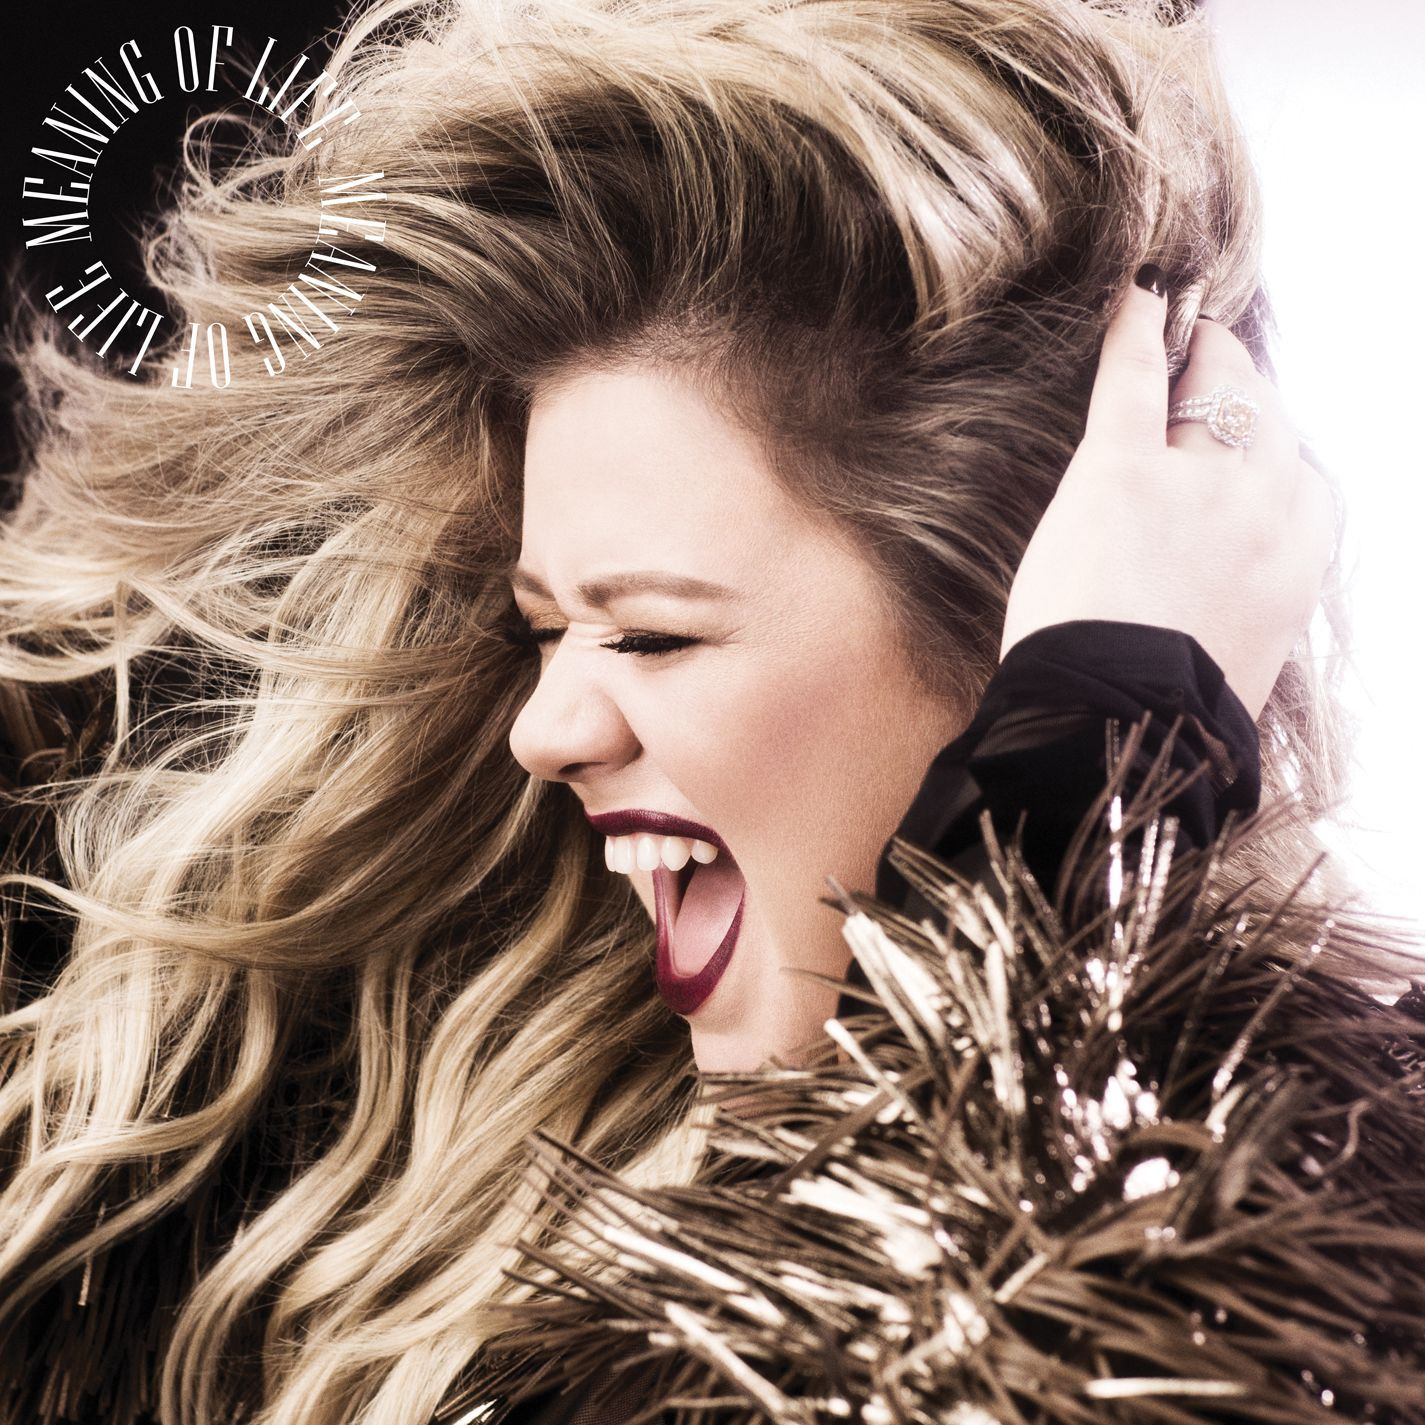 Kelly Clarkson - Meaning Of Life album cover